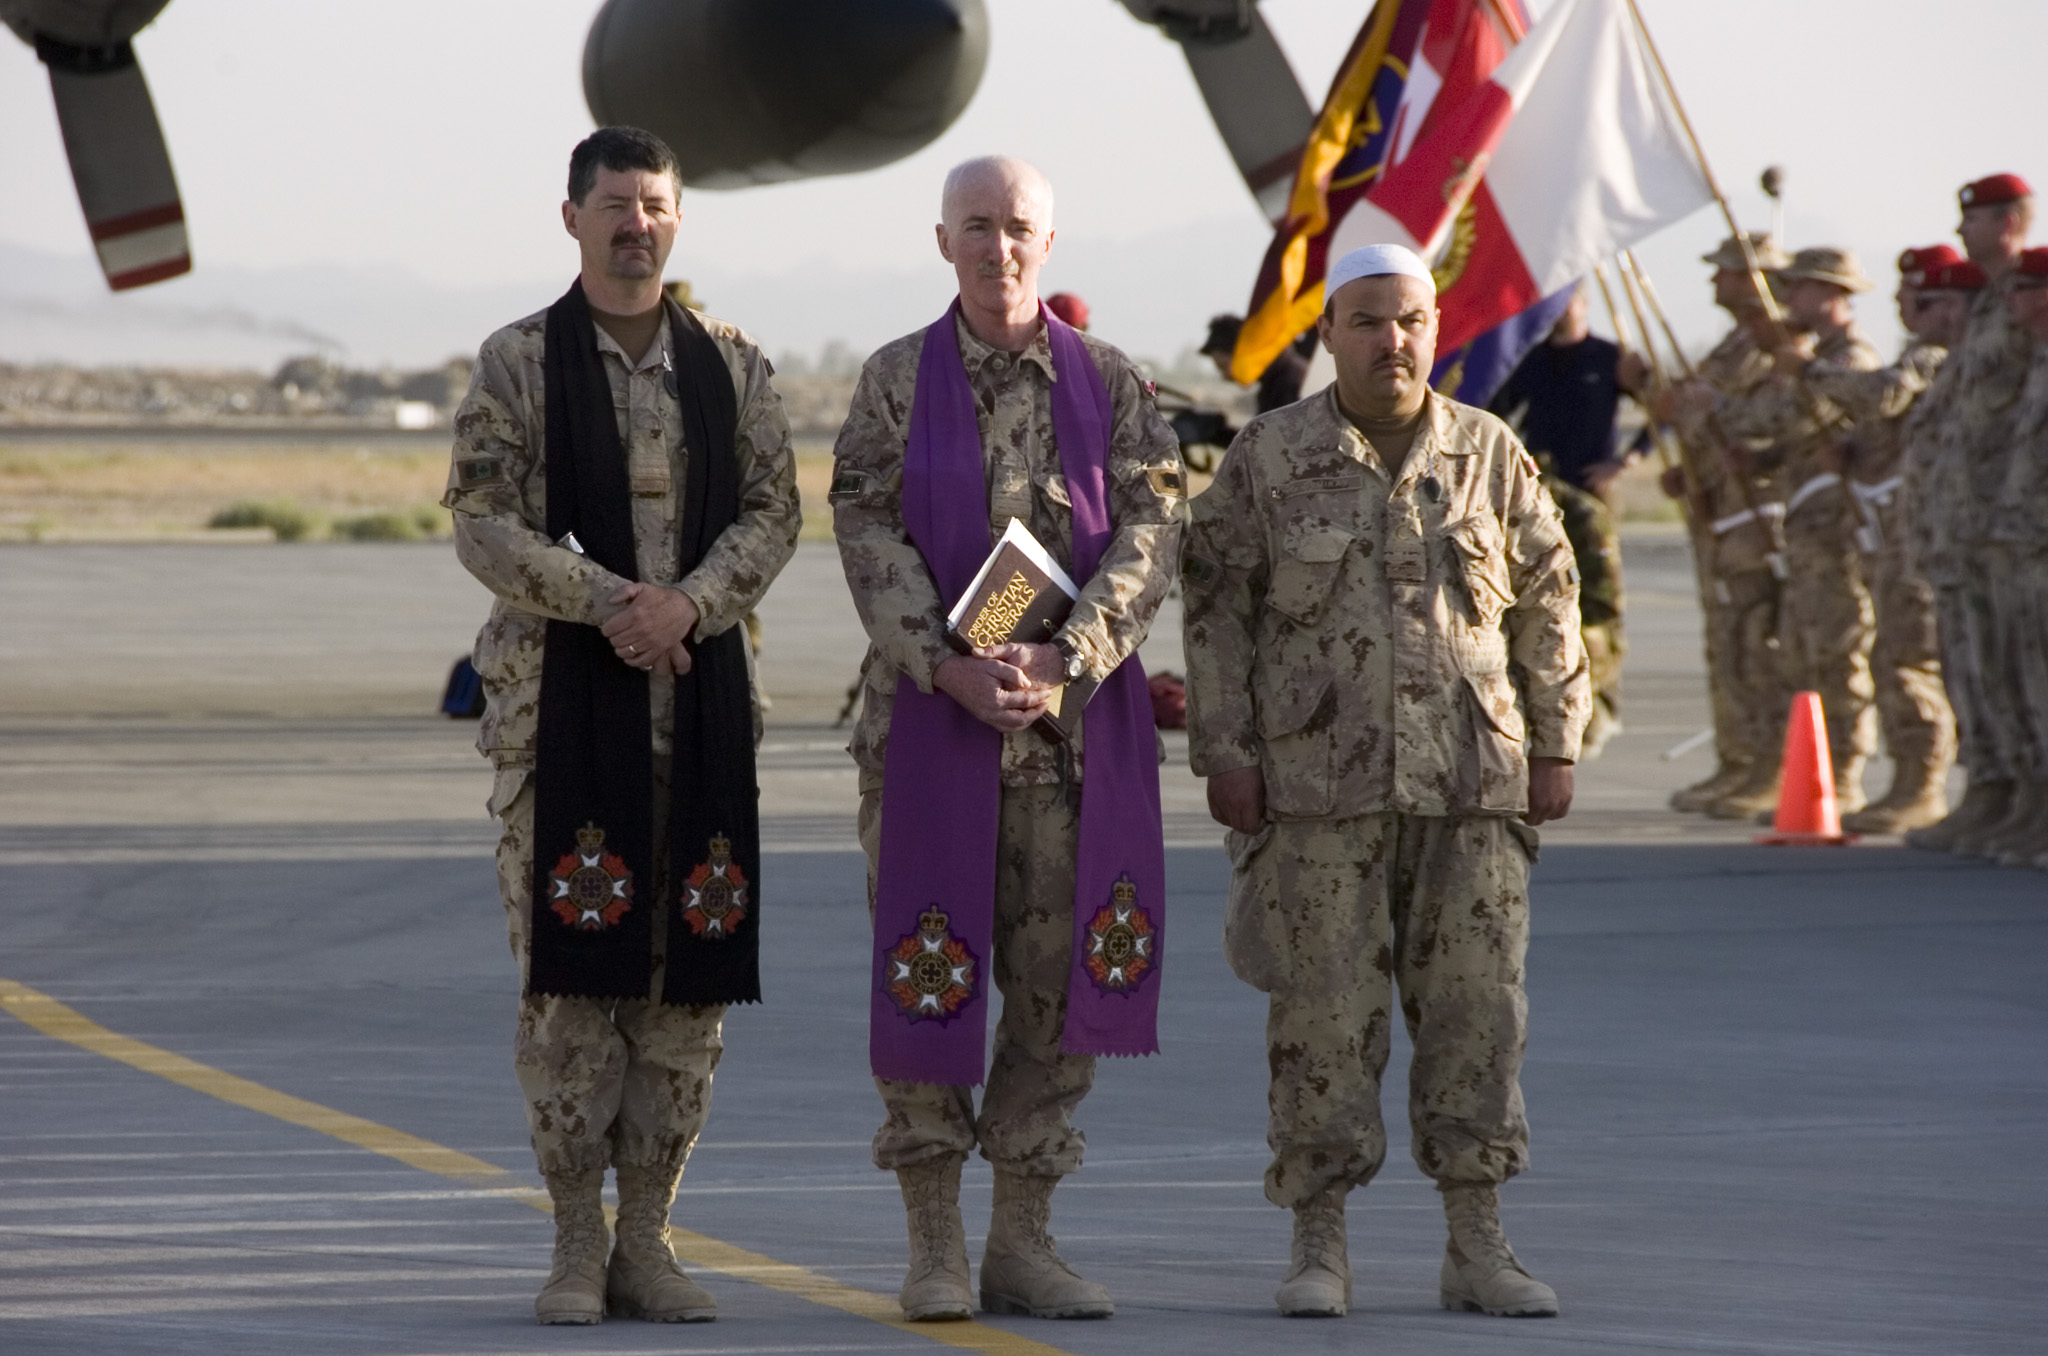 Photo of  a religious service conducted on 24 April 2006 in Kandahar, Afghanistan by a Canadian Armed Forces chaplain